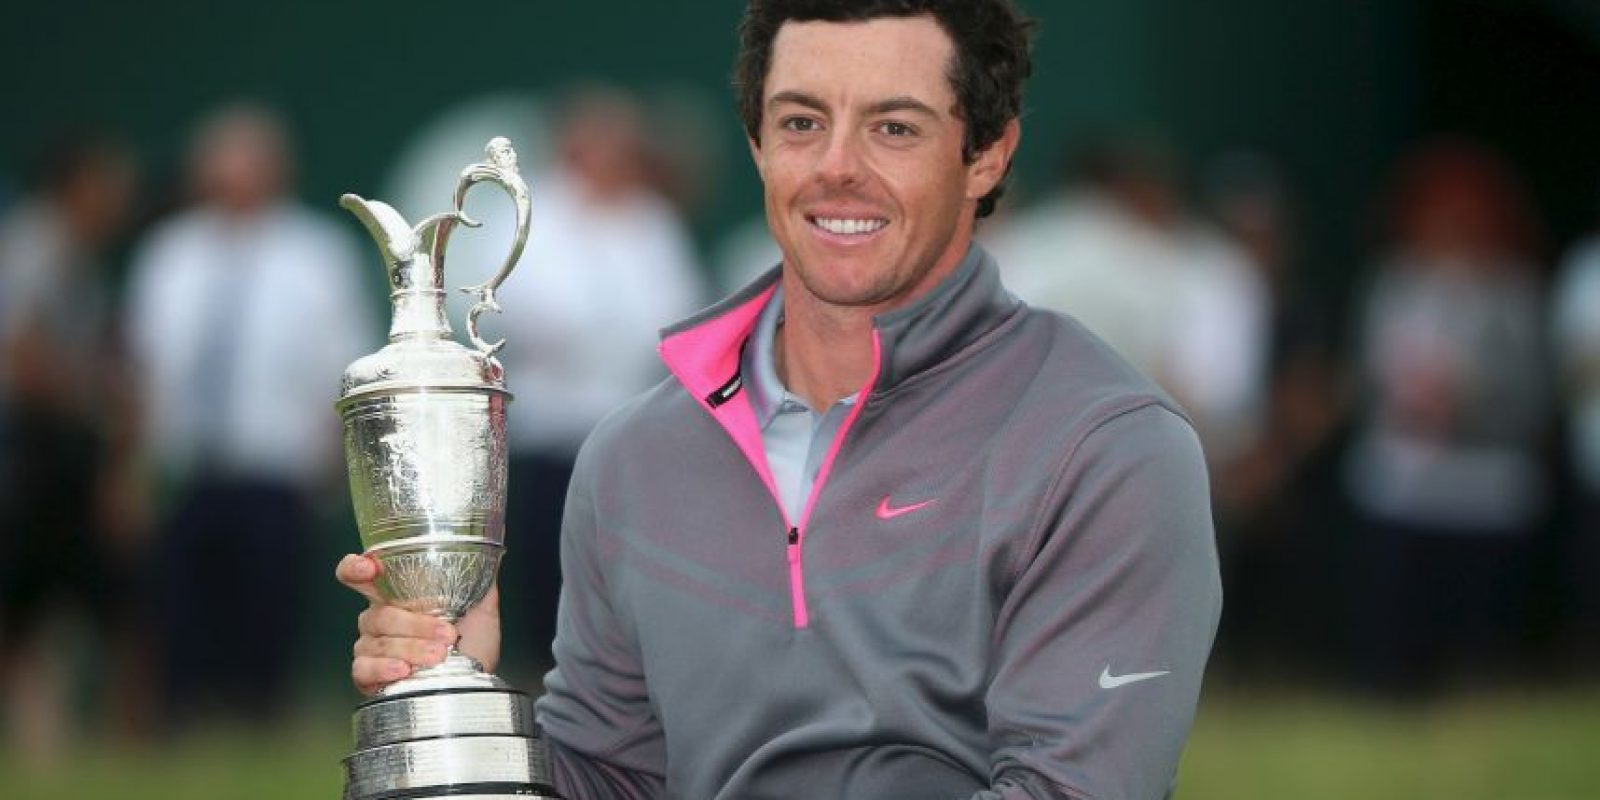 6. Rory McIlroy / Golf Foto:Getty Images